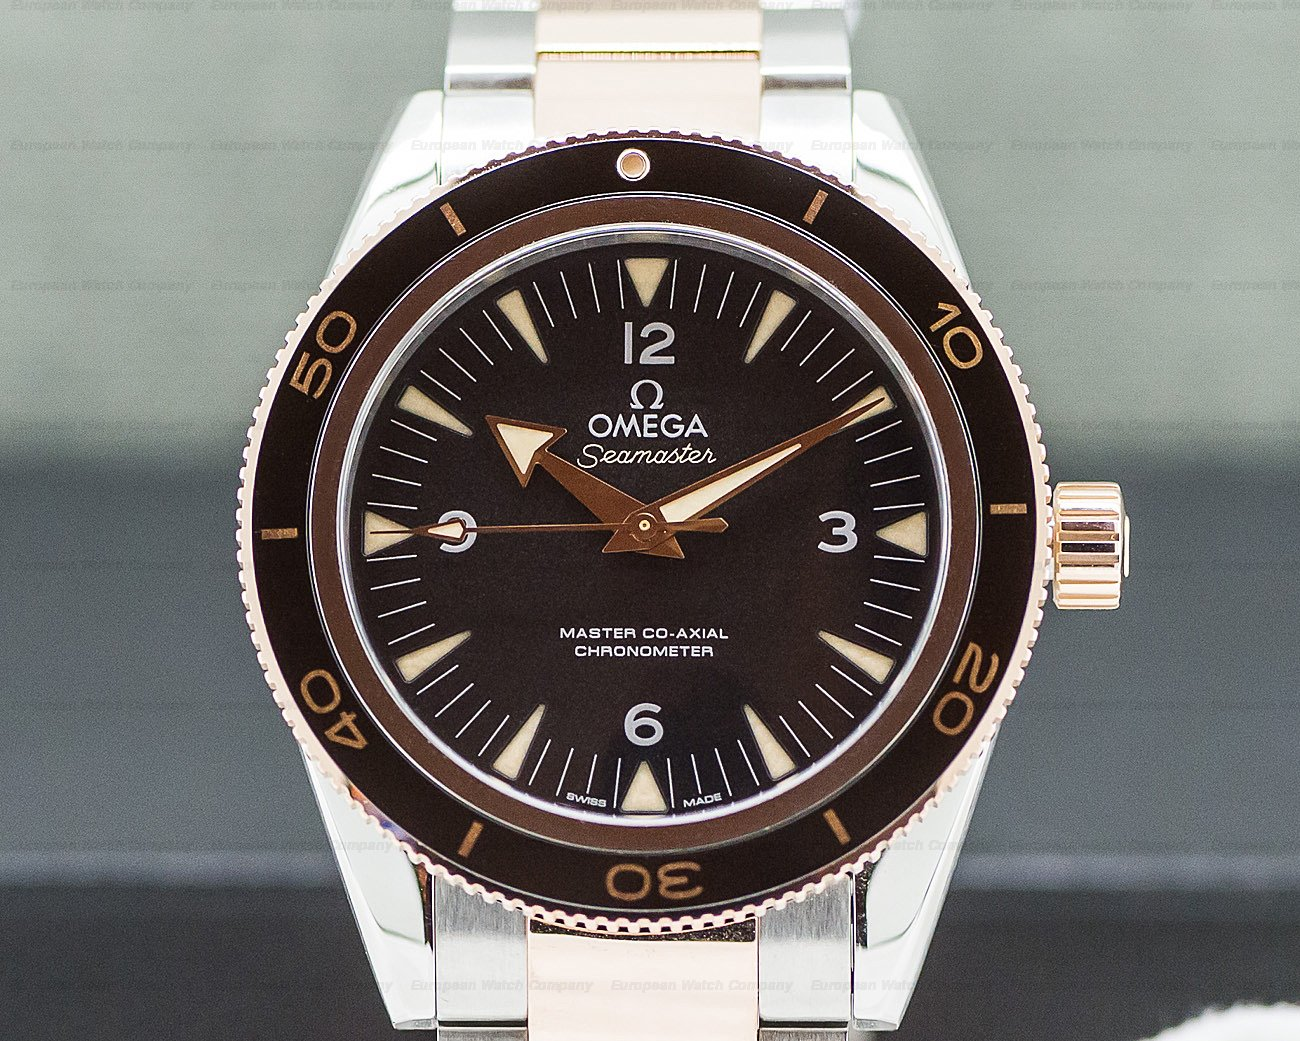 Omega Omega Seamaster 300M Master Co-Axial SS / RG 41MM Ref. 233.20.41.21.01.001